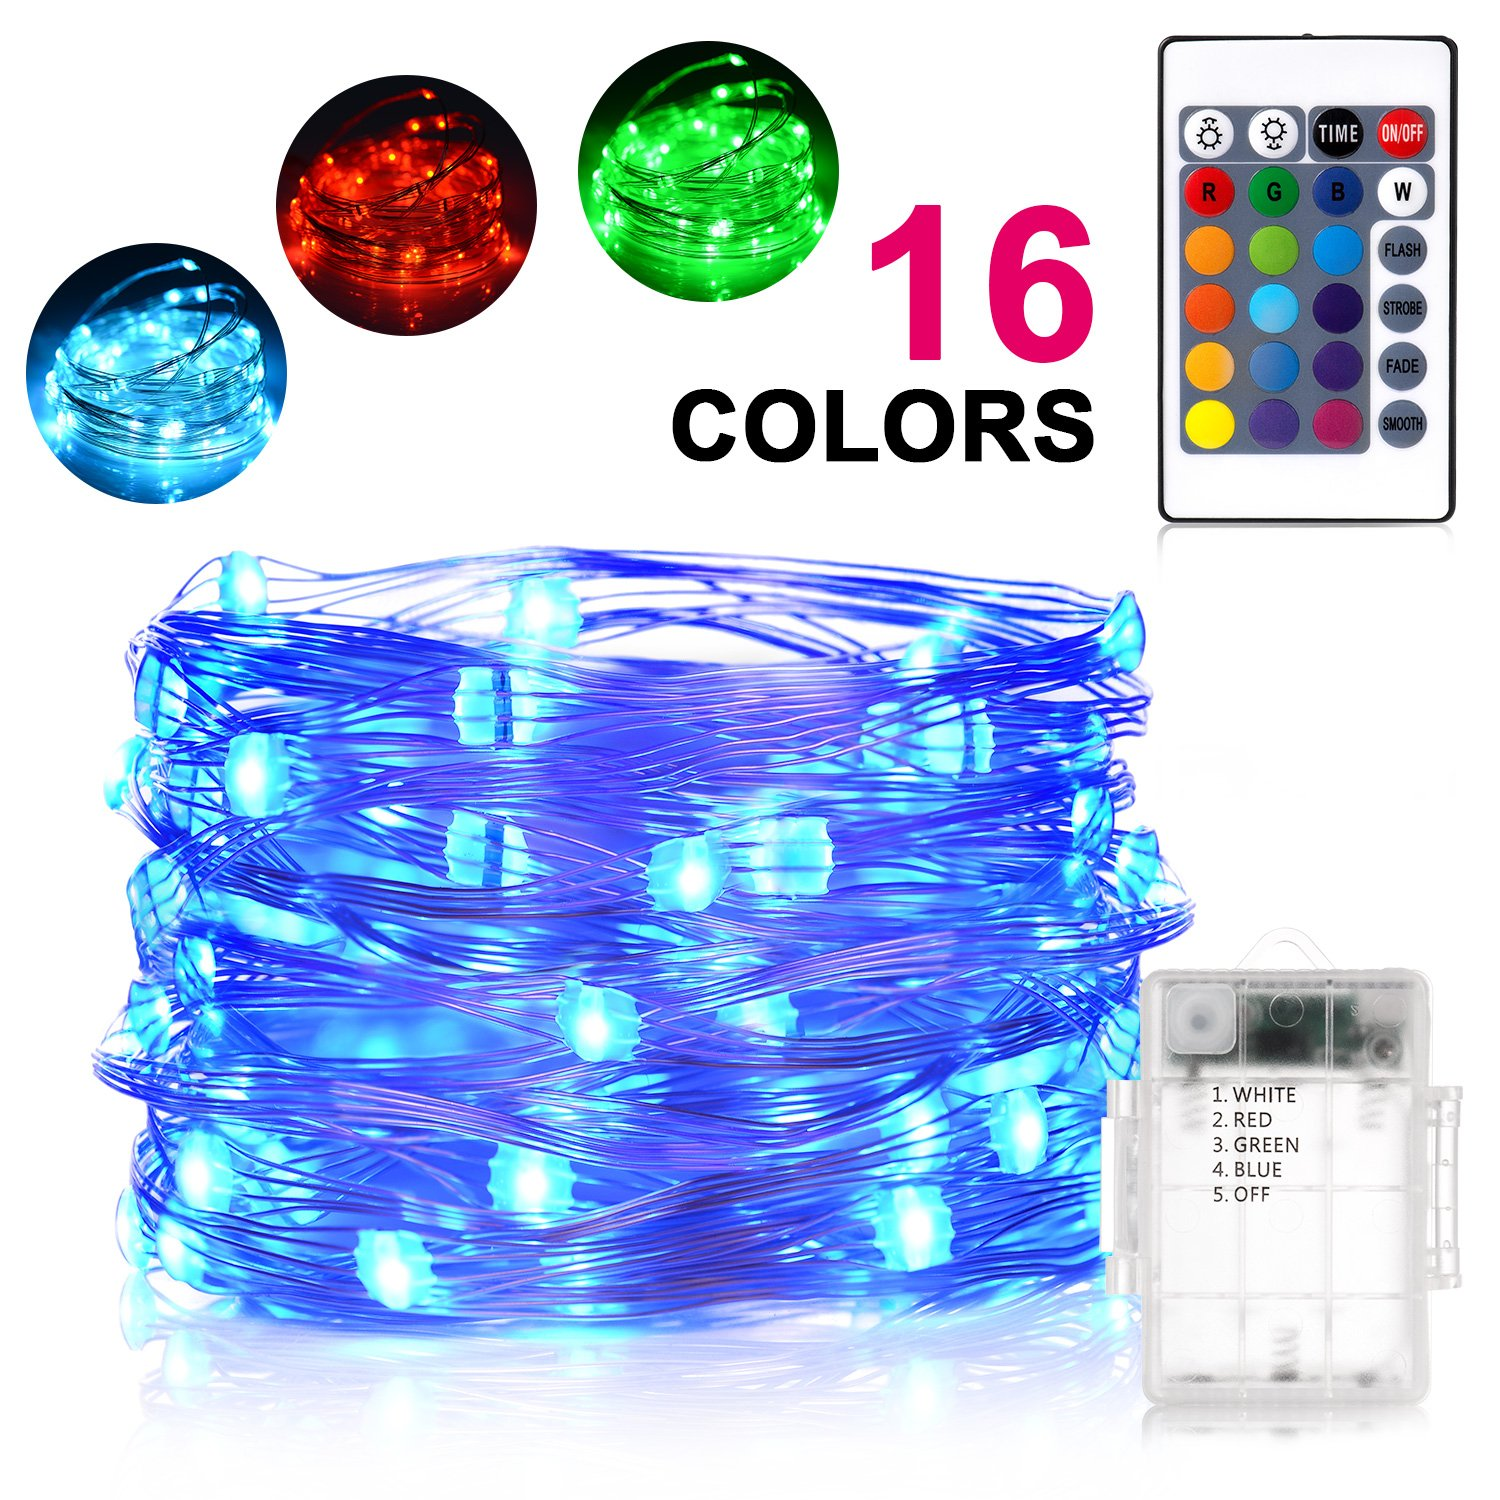 Sunnest Waterproof String Lights Outdoor, 16ft 50 LEDs Fairy Lights Battery Operated 16 Colors String Lights with Remote Control LED Lights for Bedroom, Corridor, Patio, Garden, Yard